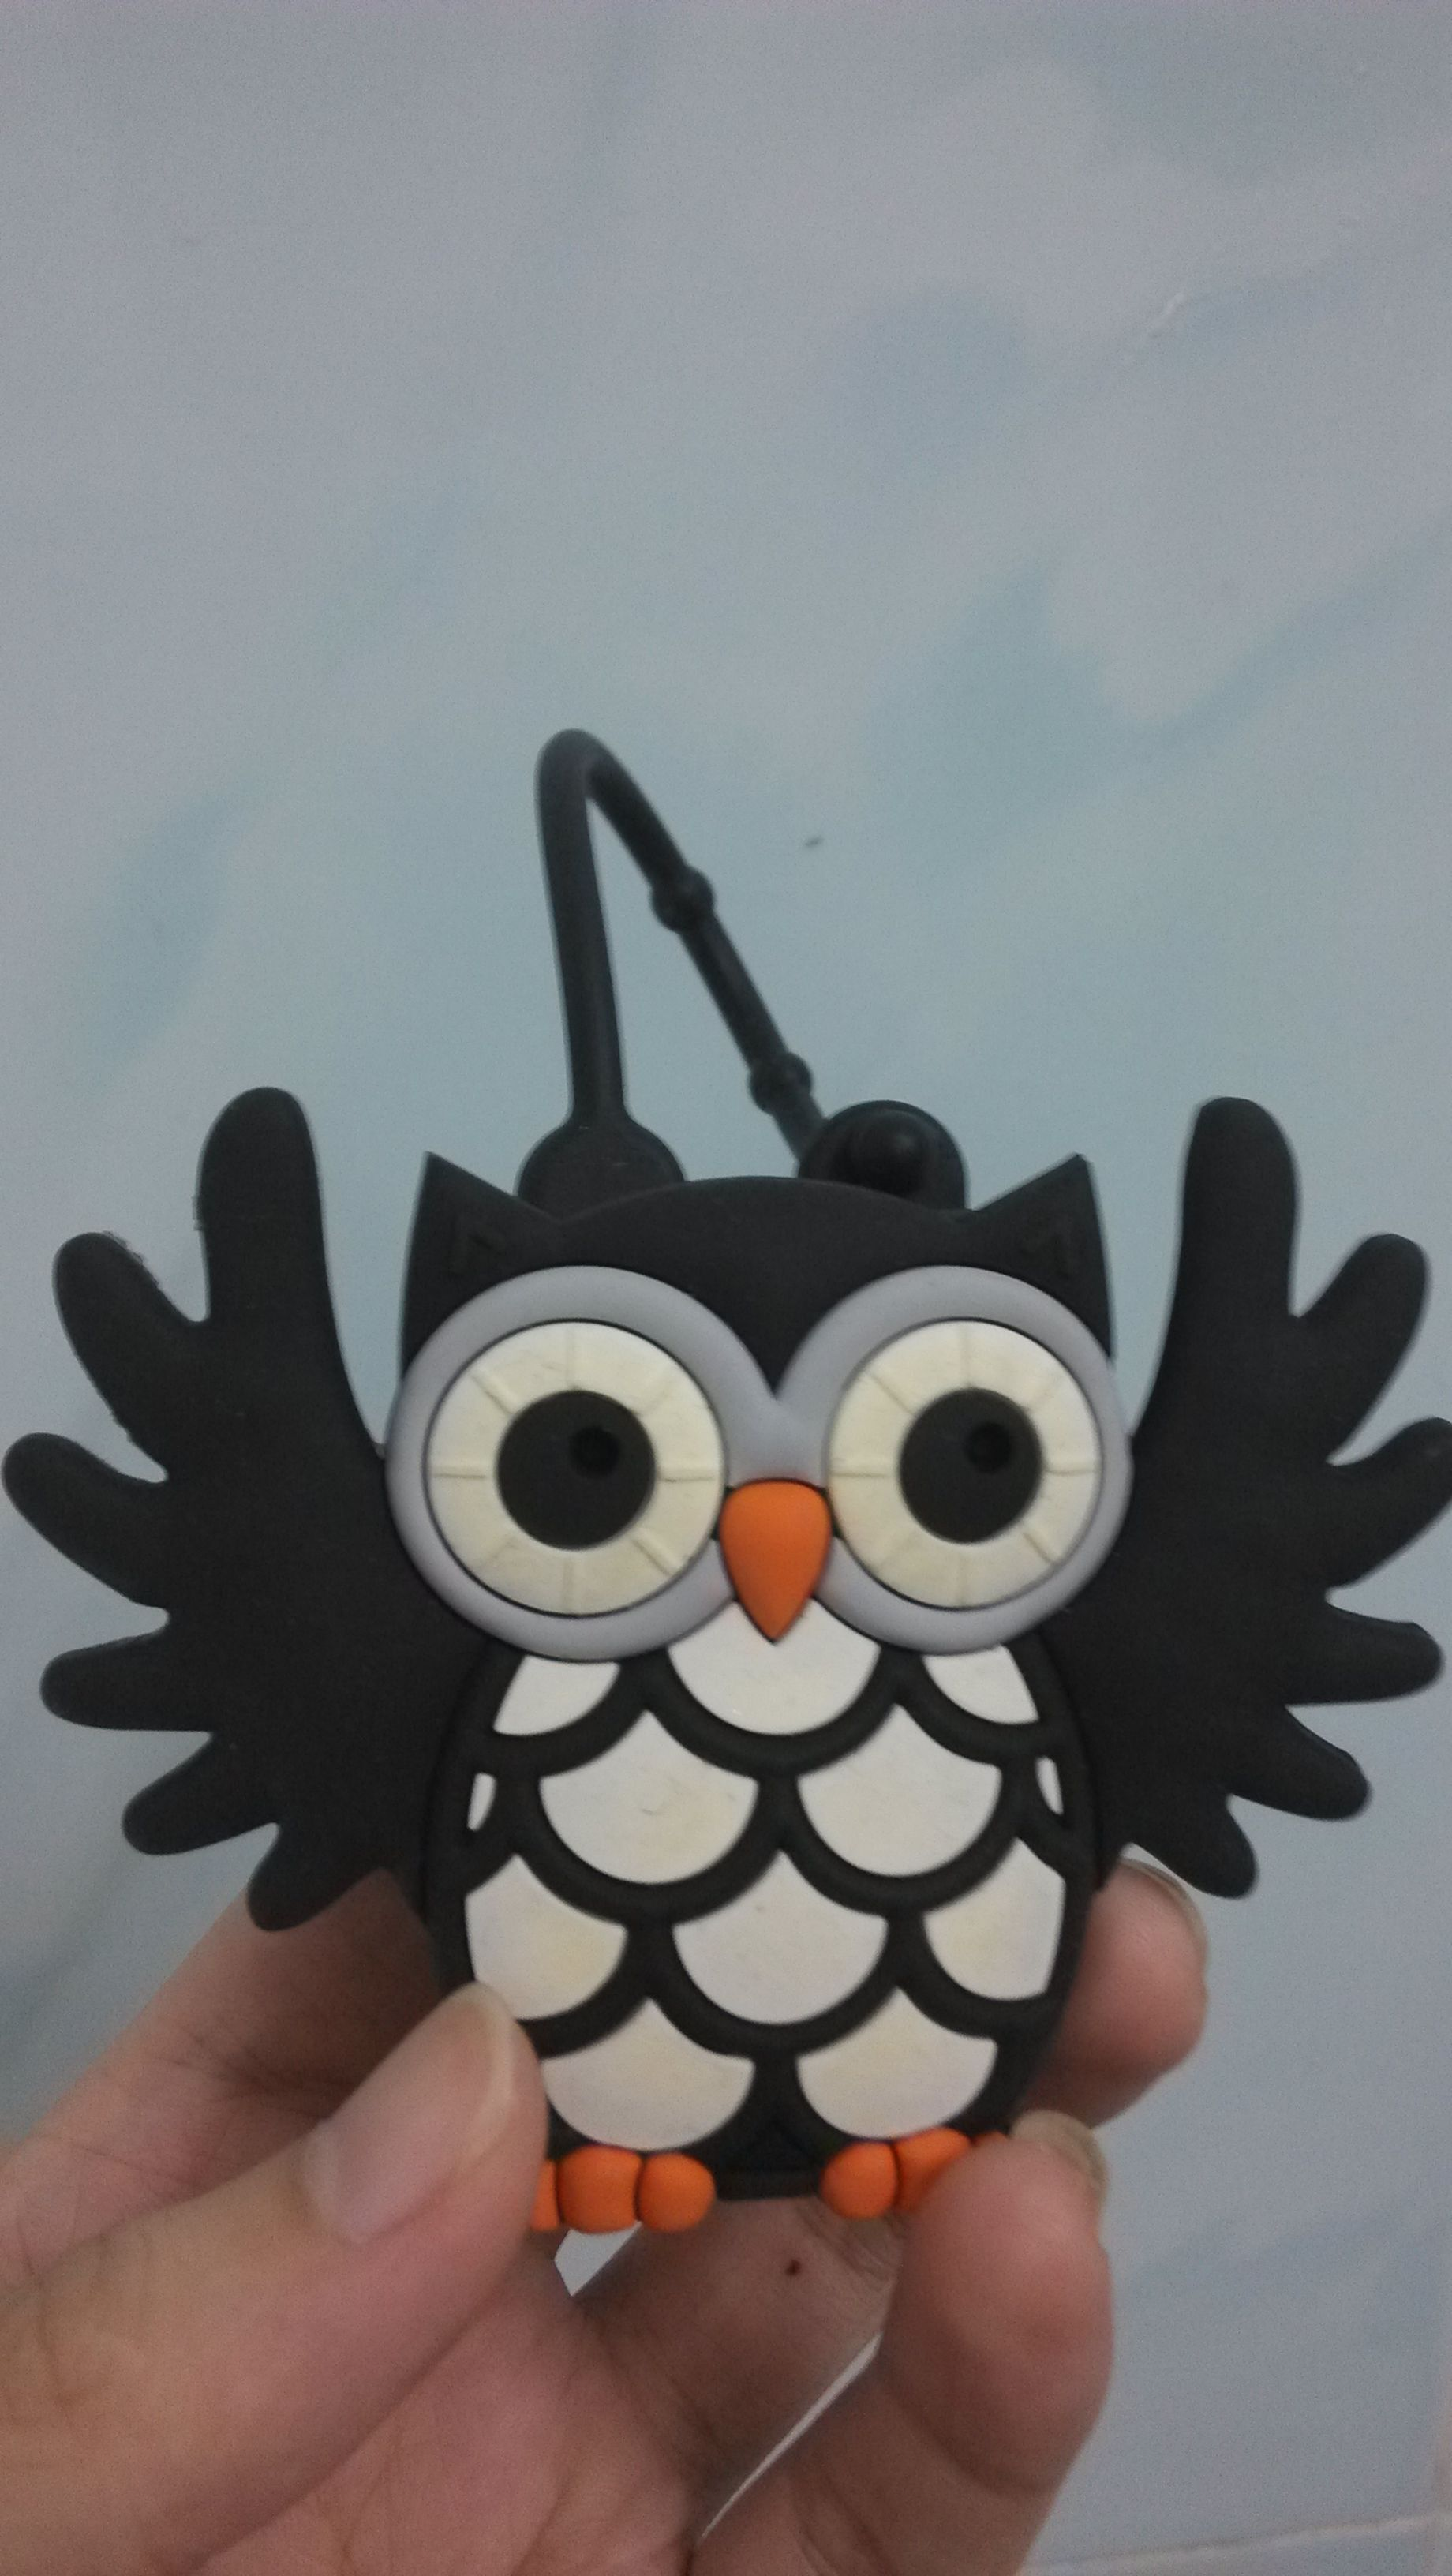 Black Owl Pocketbac Holder Silicone Hand Sanitizer Holder Bath